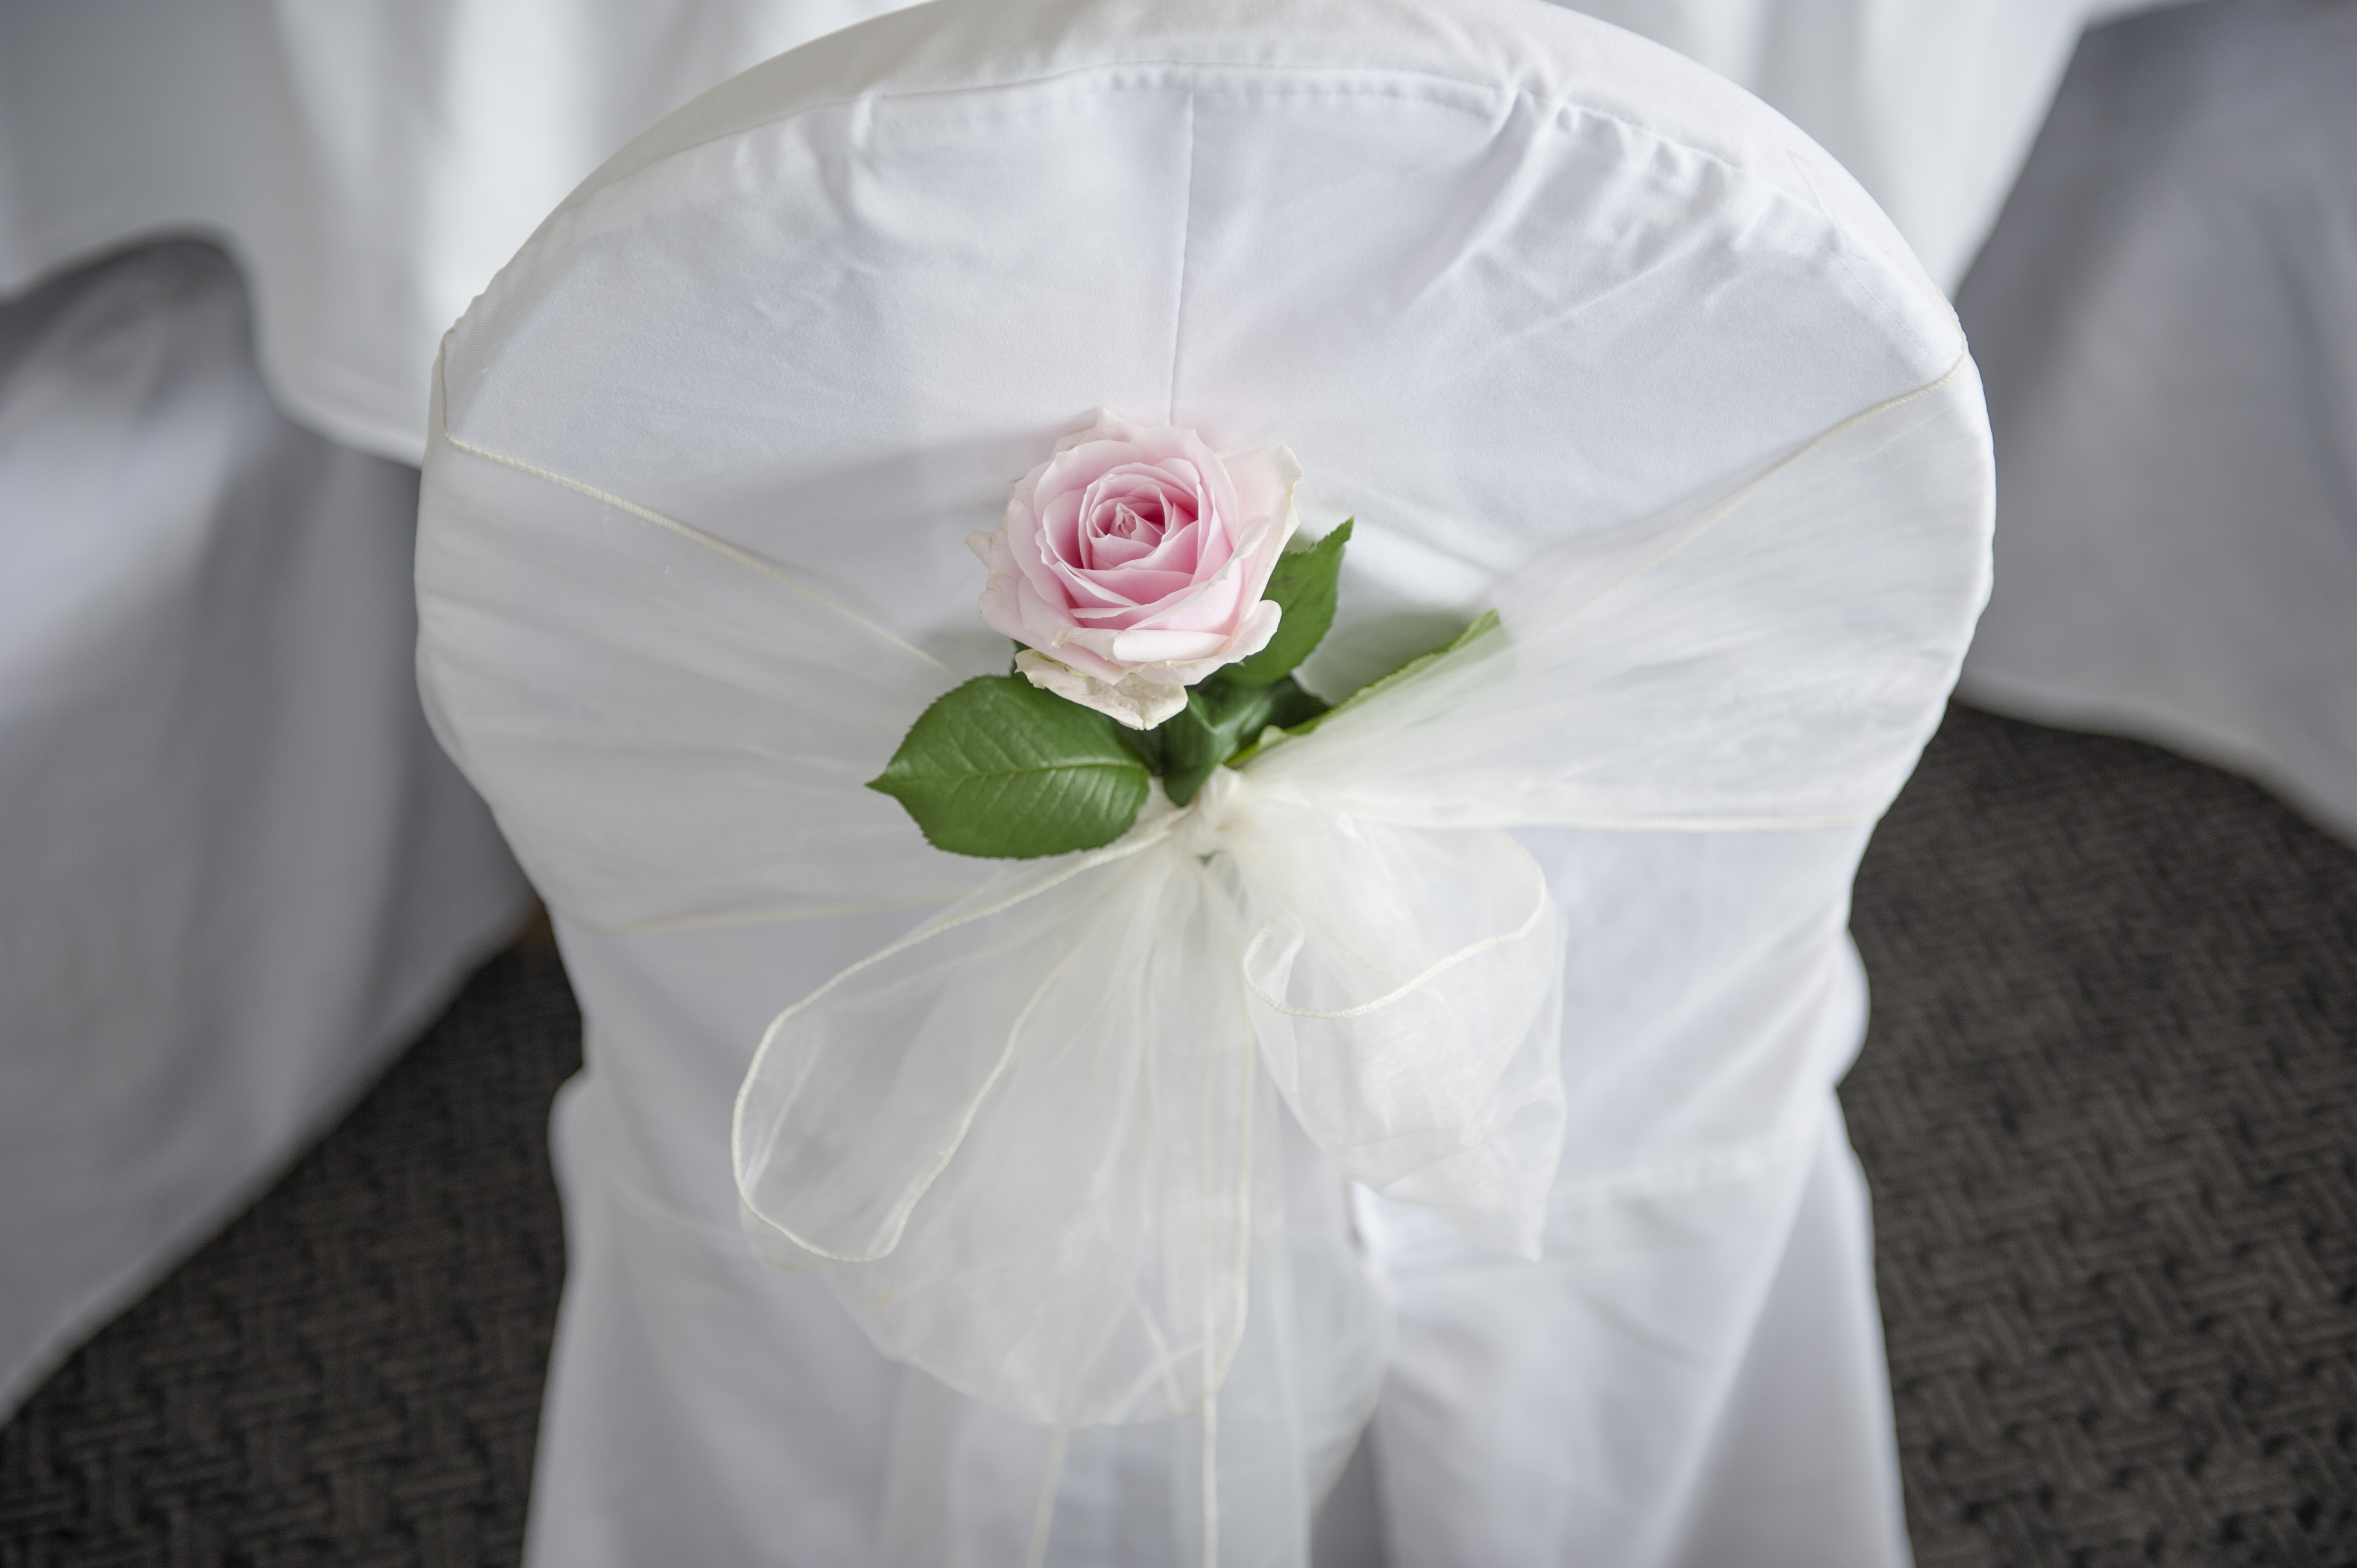 perfect details for your event - wedding extras